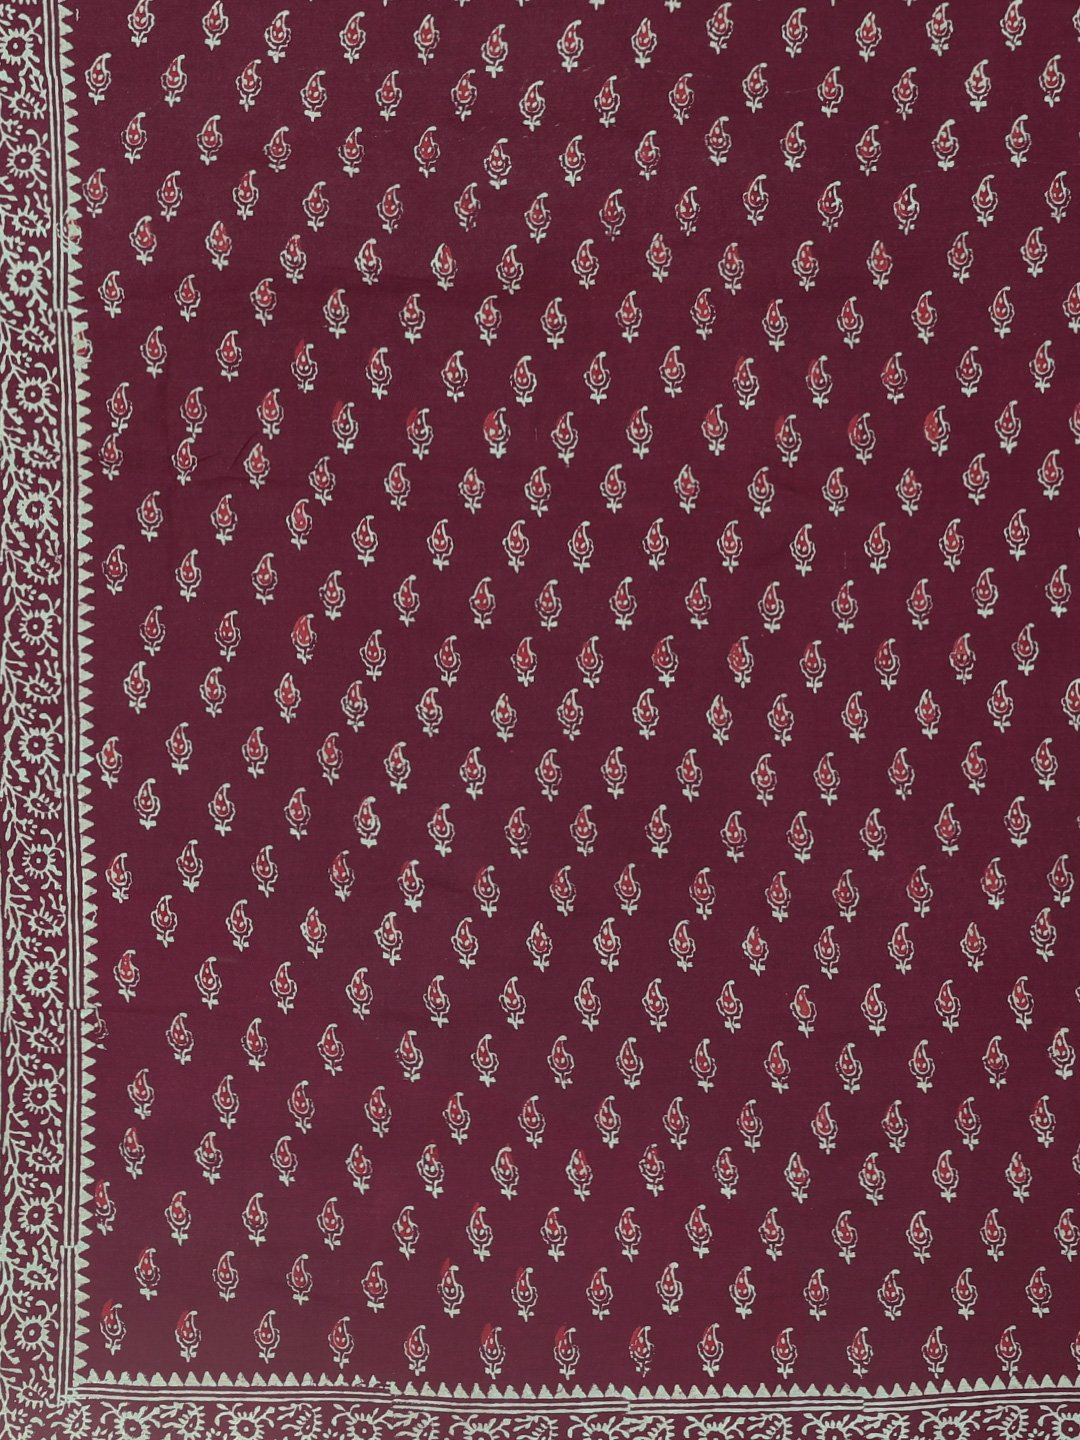 Burgundy Handblock Print Chanderi Cotton Sare-Saree-Kalakari India-BHKPSA0054-Cotton, Dabu, Geographical Indication, Hand Blocks, Hand Crafted, Heritage Prints, Indigo, Natural Dyes, Sarees, Sustainable Fabrics-[Linen,Ethnic,wear,Fashionista,Handloom,Handicraft,Indigo,blockprint,block,print,Cotton,Chanderi,Blue, latest,classy,party,bollywood,trendy,summer,style,traditional,formal,elegant,unique,style,hand,block,print, dabu,booti,gift,present,glamorous,affordable,collectible,Sari,Saree,printed, h